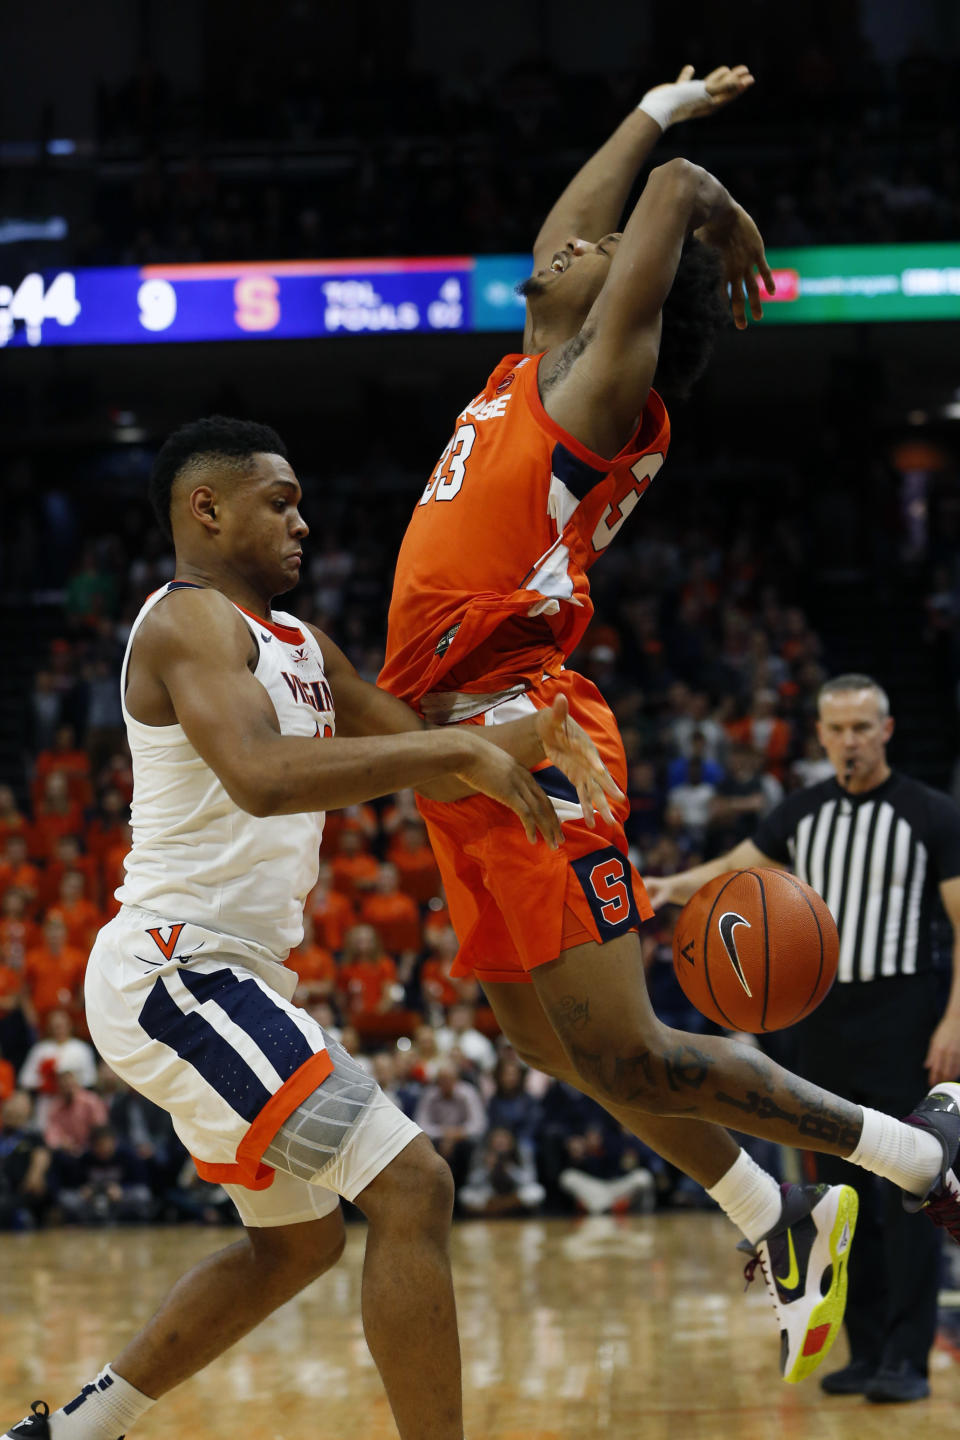 Syracuse forward Elijah Hughes (33) looses the ball as Virginia guard Casey Morsell (13) defends during the first half of an NCAA college basketball game in Charlottesville, Va., Saturday, Jan. 11, 2020. Morsell ws called for a four on the play. (AP Photo/Steve Helber)